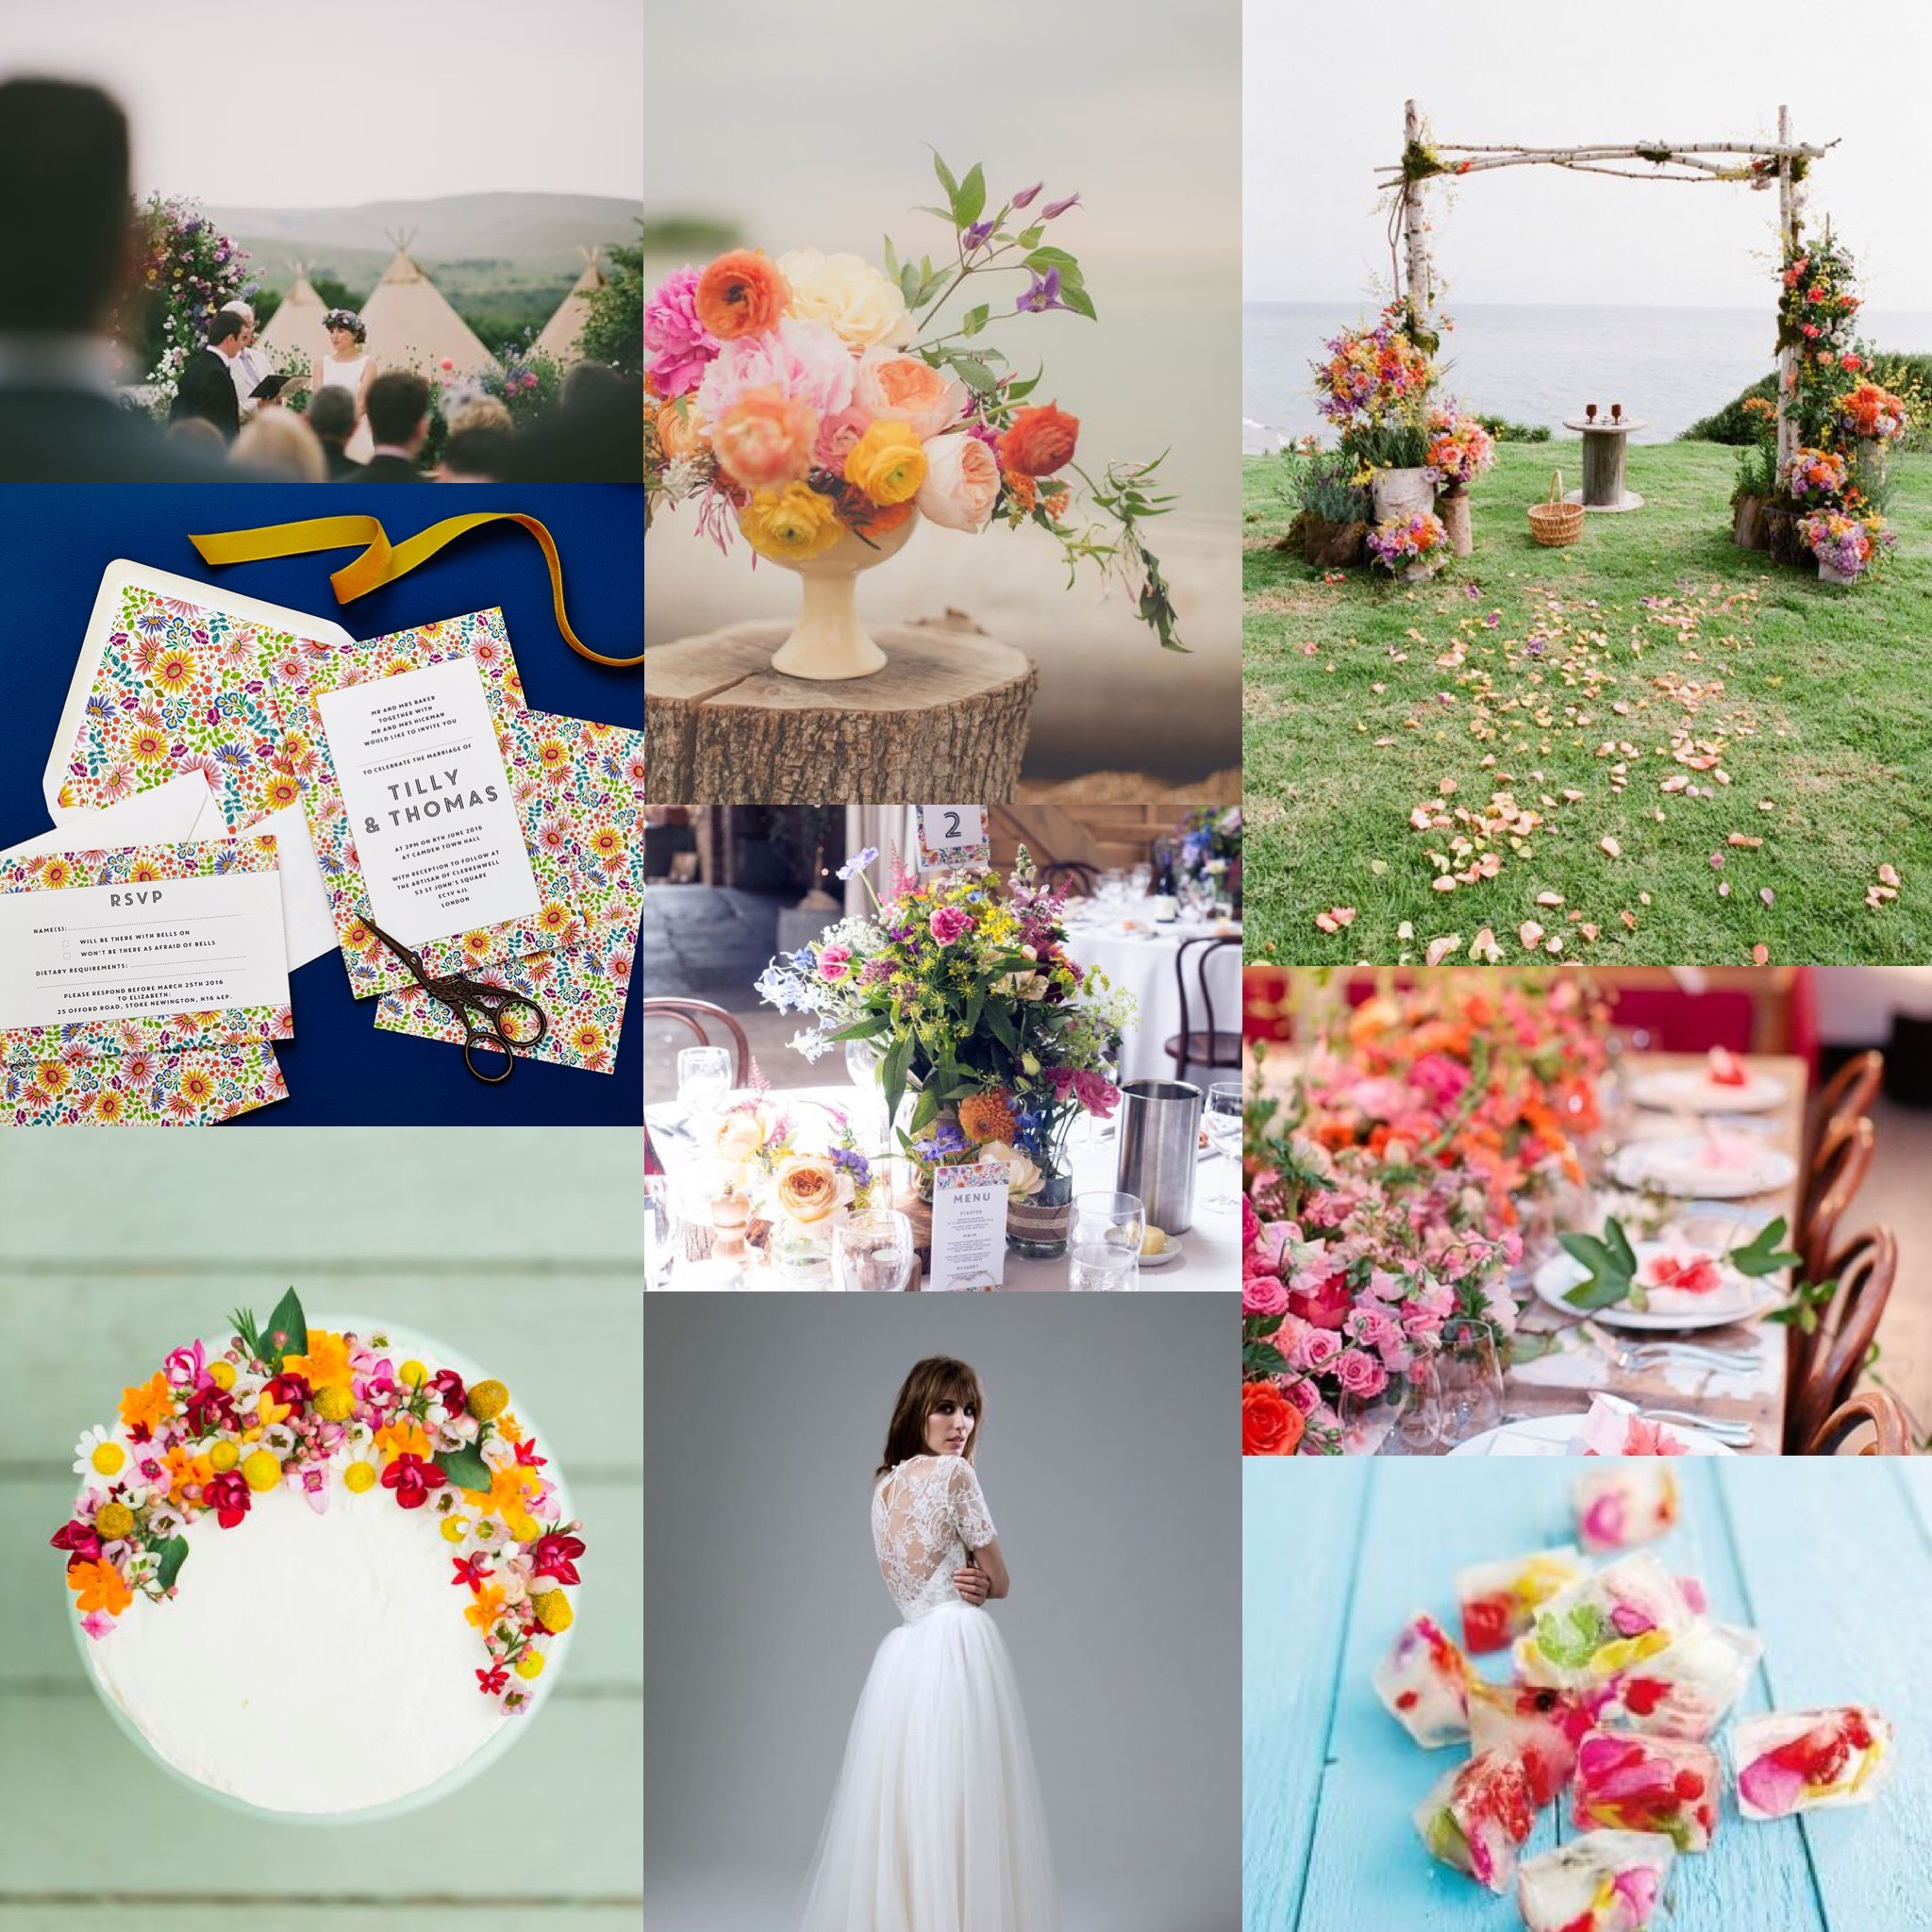 Lucy says I do bright flowers wedding stationery design inspiration board